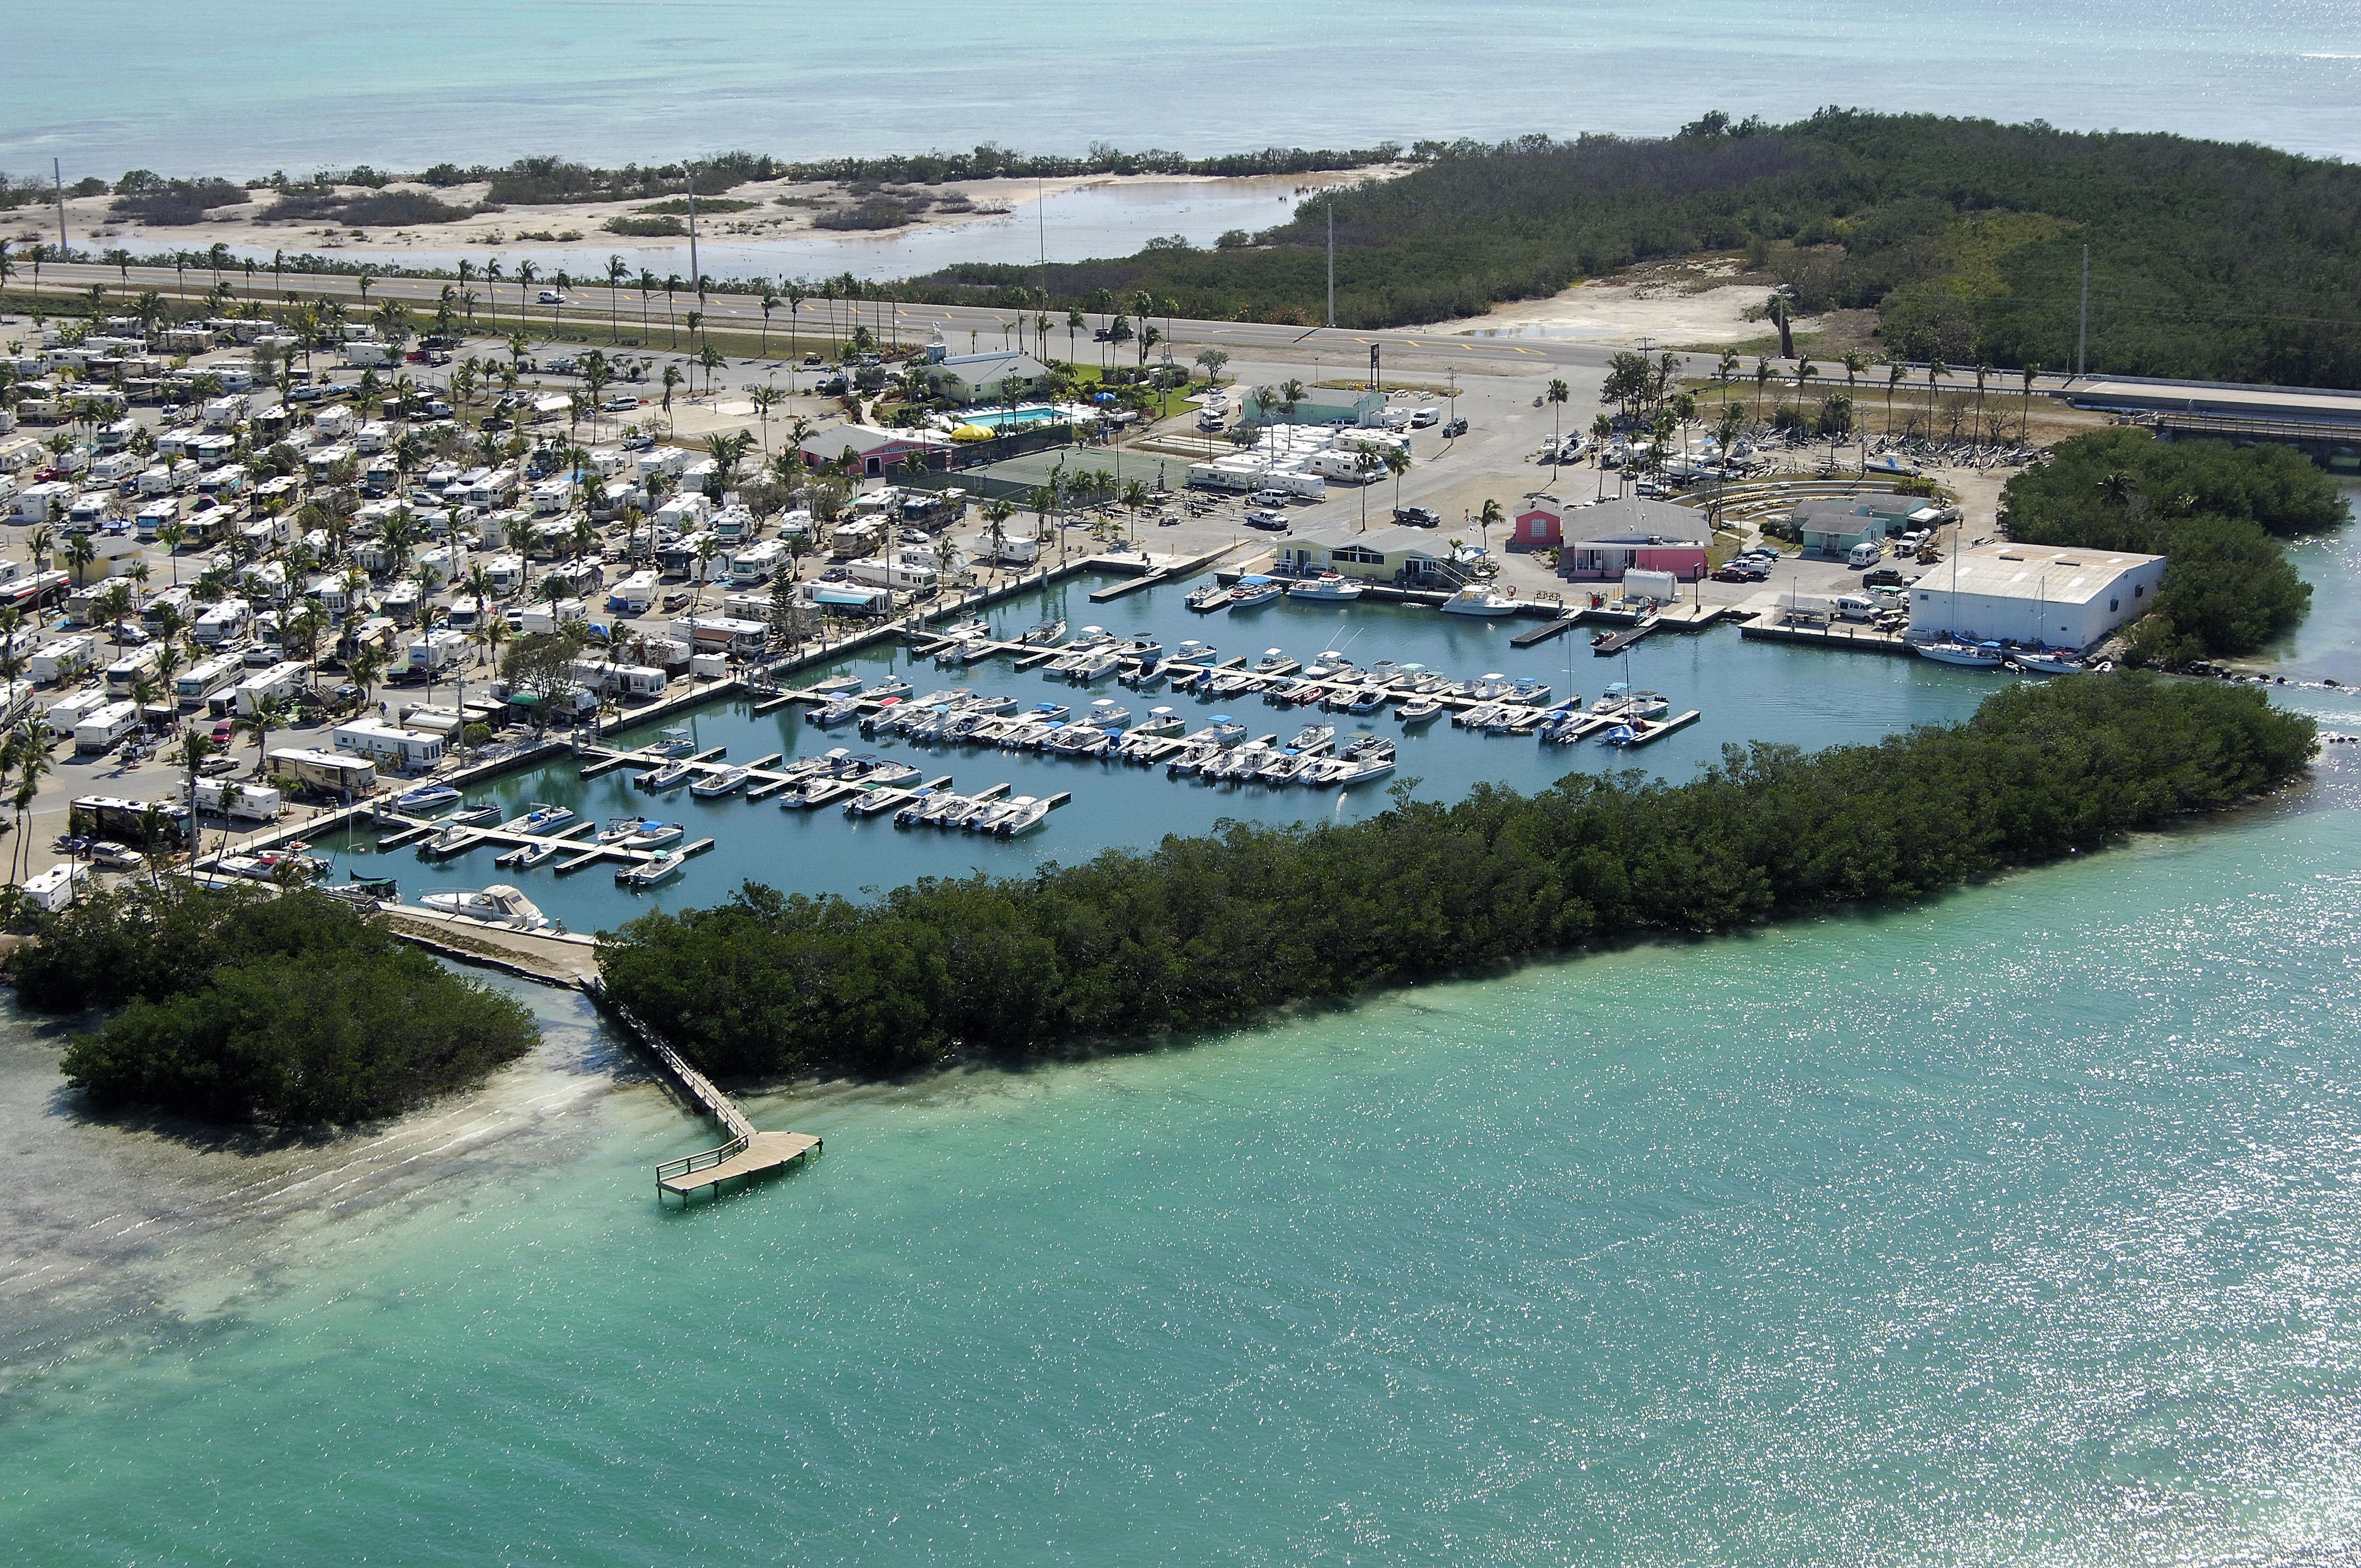 Sunshine Key Camping Resort in Big Pine Key FL United